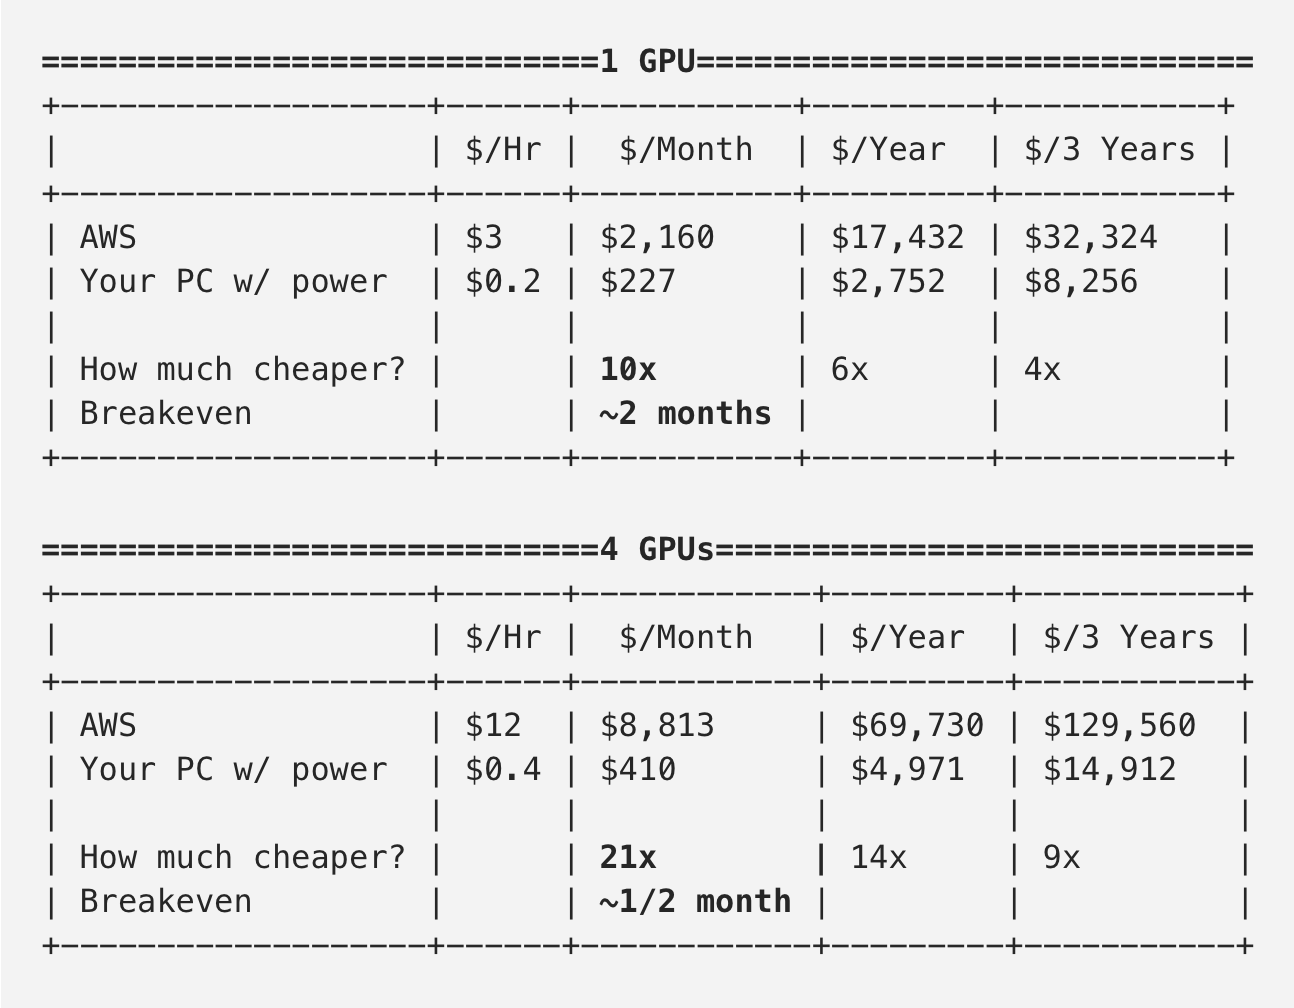 Why building your own Deep Learning Computer is 10x cheaper than AWS